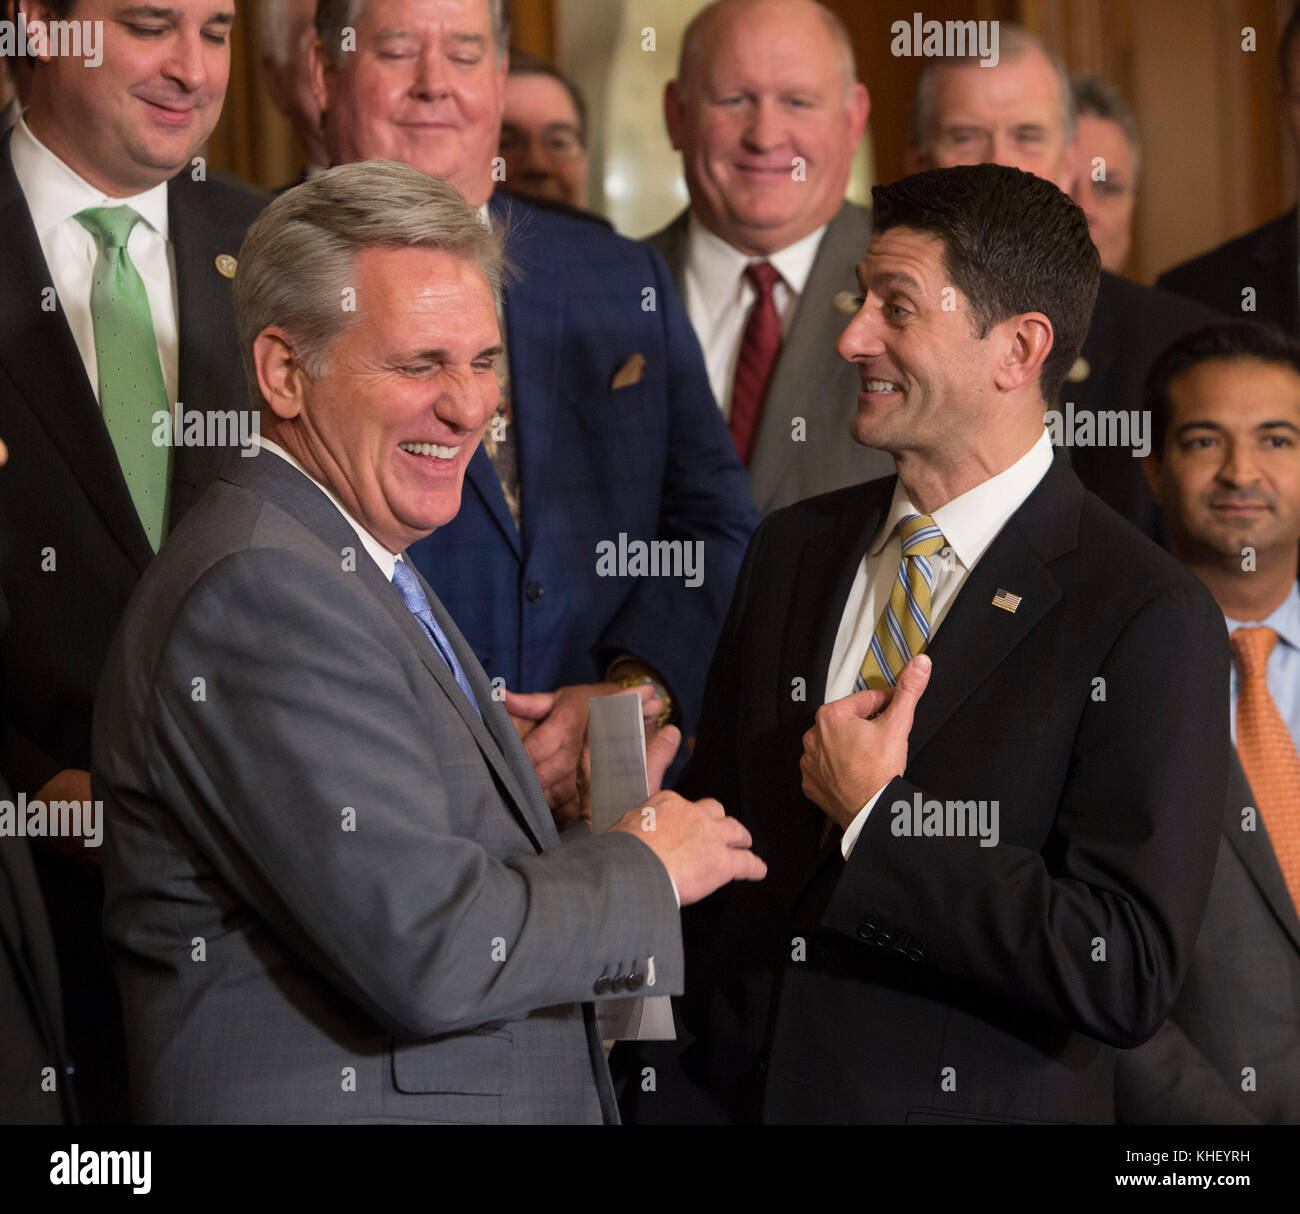 House Majority Leader Kevin McCarthy(left), Speaker Of The House Paul  Ryan(right) Congratulate Each Other While Celebrating The House Of  Representative ...